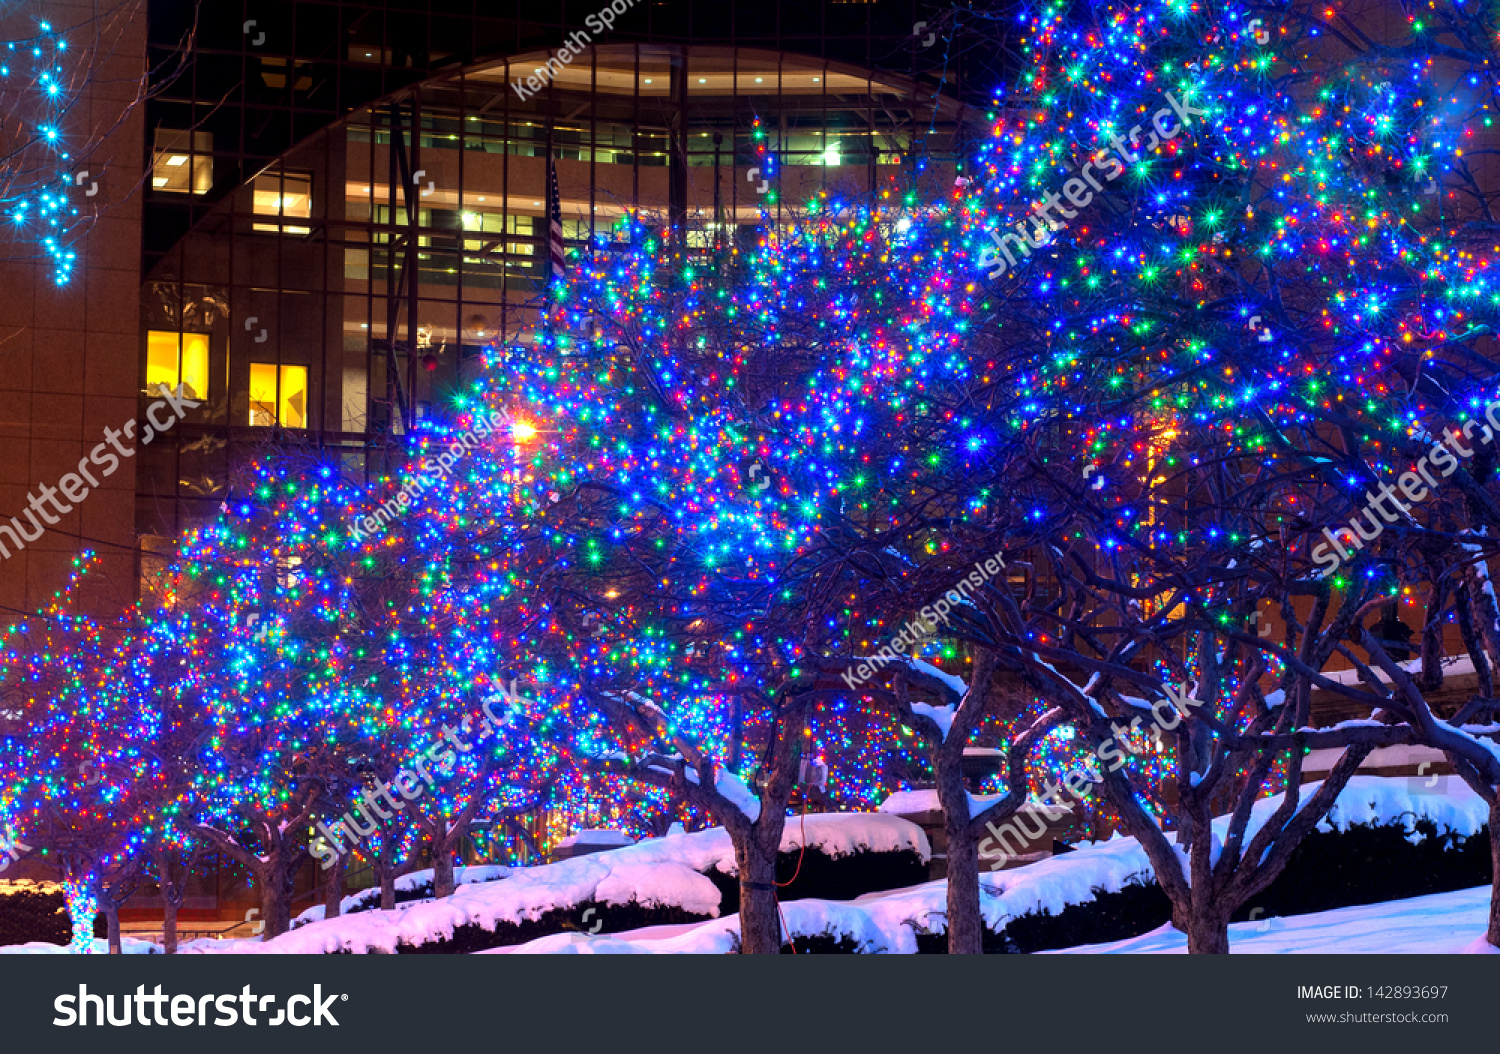 Trees Lighted In Blue Lights For Christmas In Downtown Cleveland Ohio